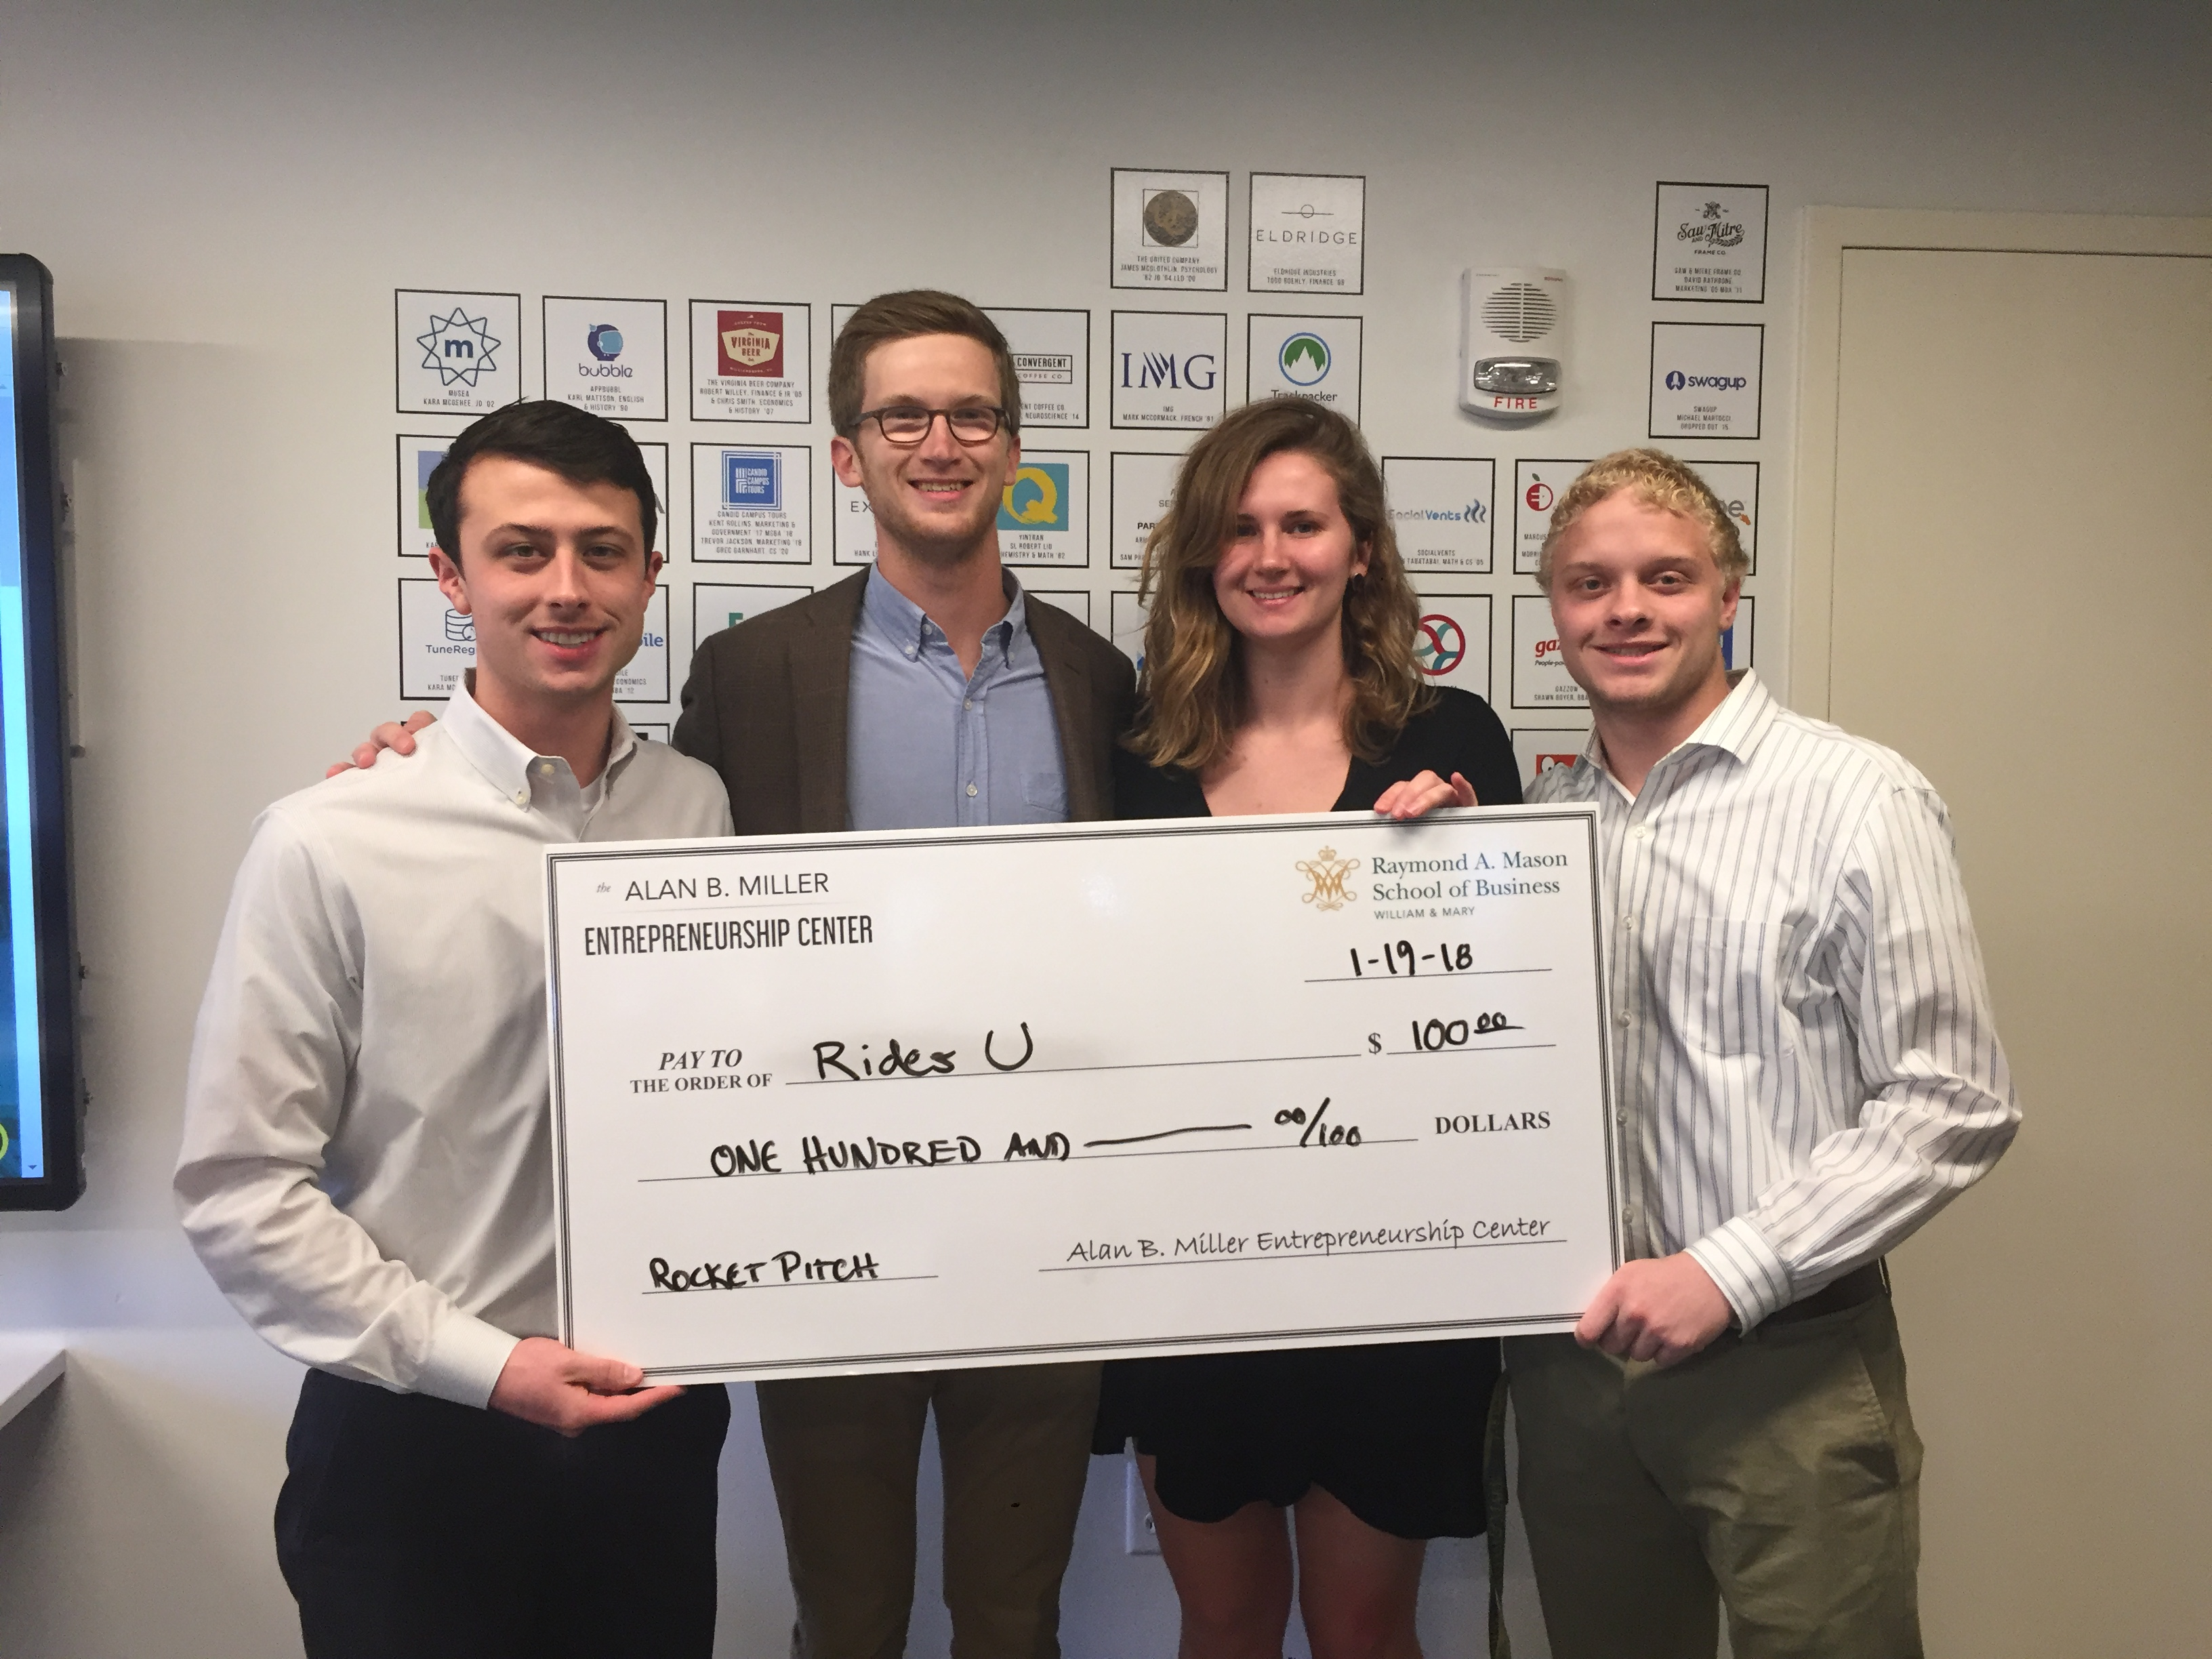 Rides U, Rocket Pitch Winner